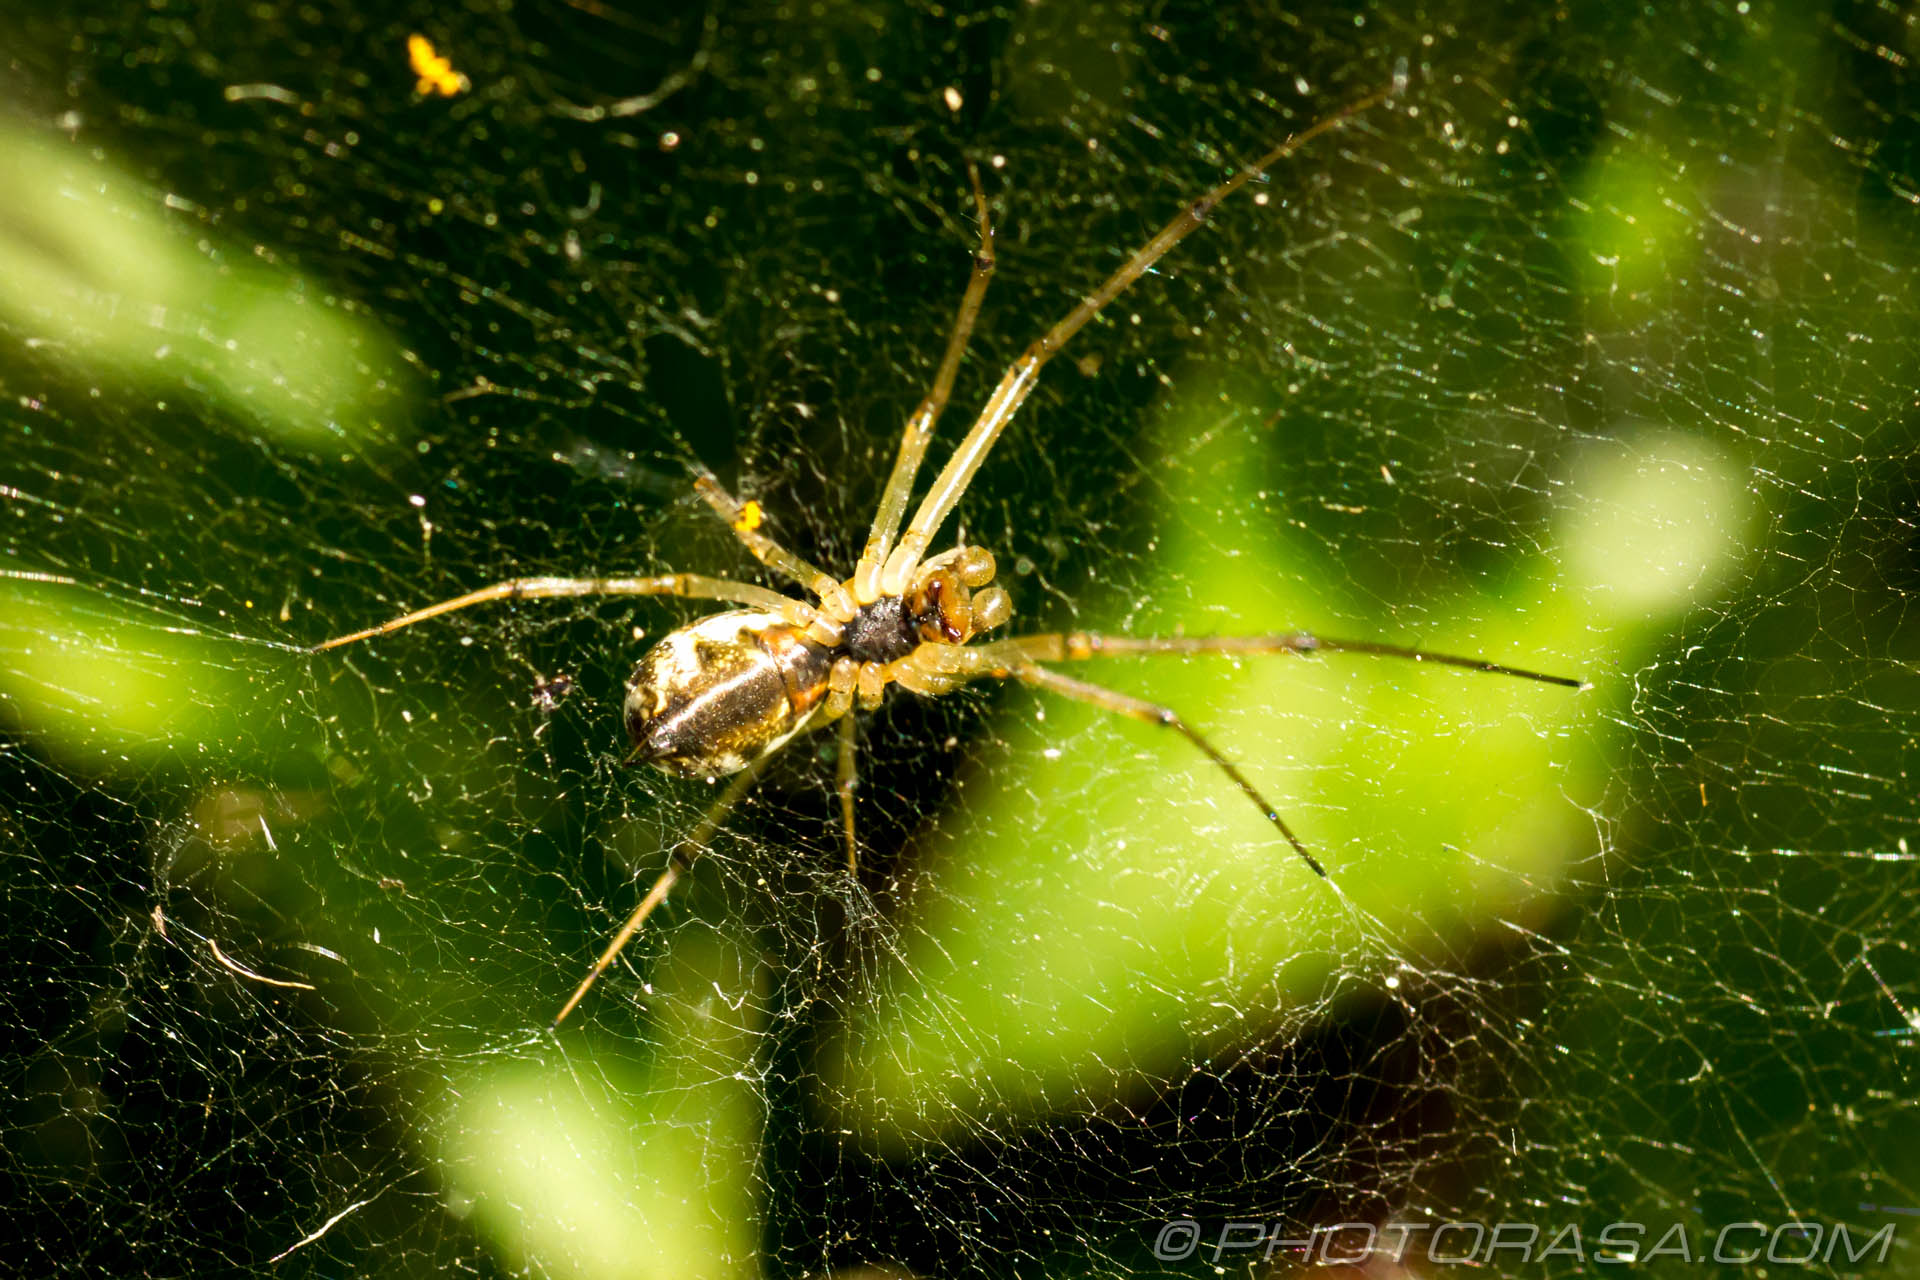 http://photorasa.com/common-orb-weaver-spiders/spider-in-mesh-web/